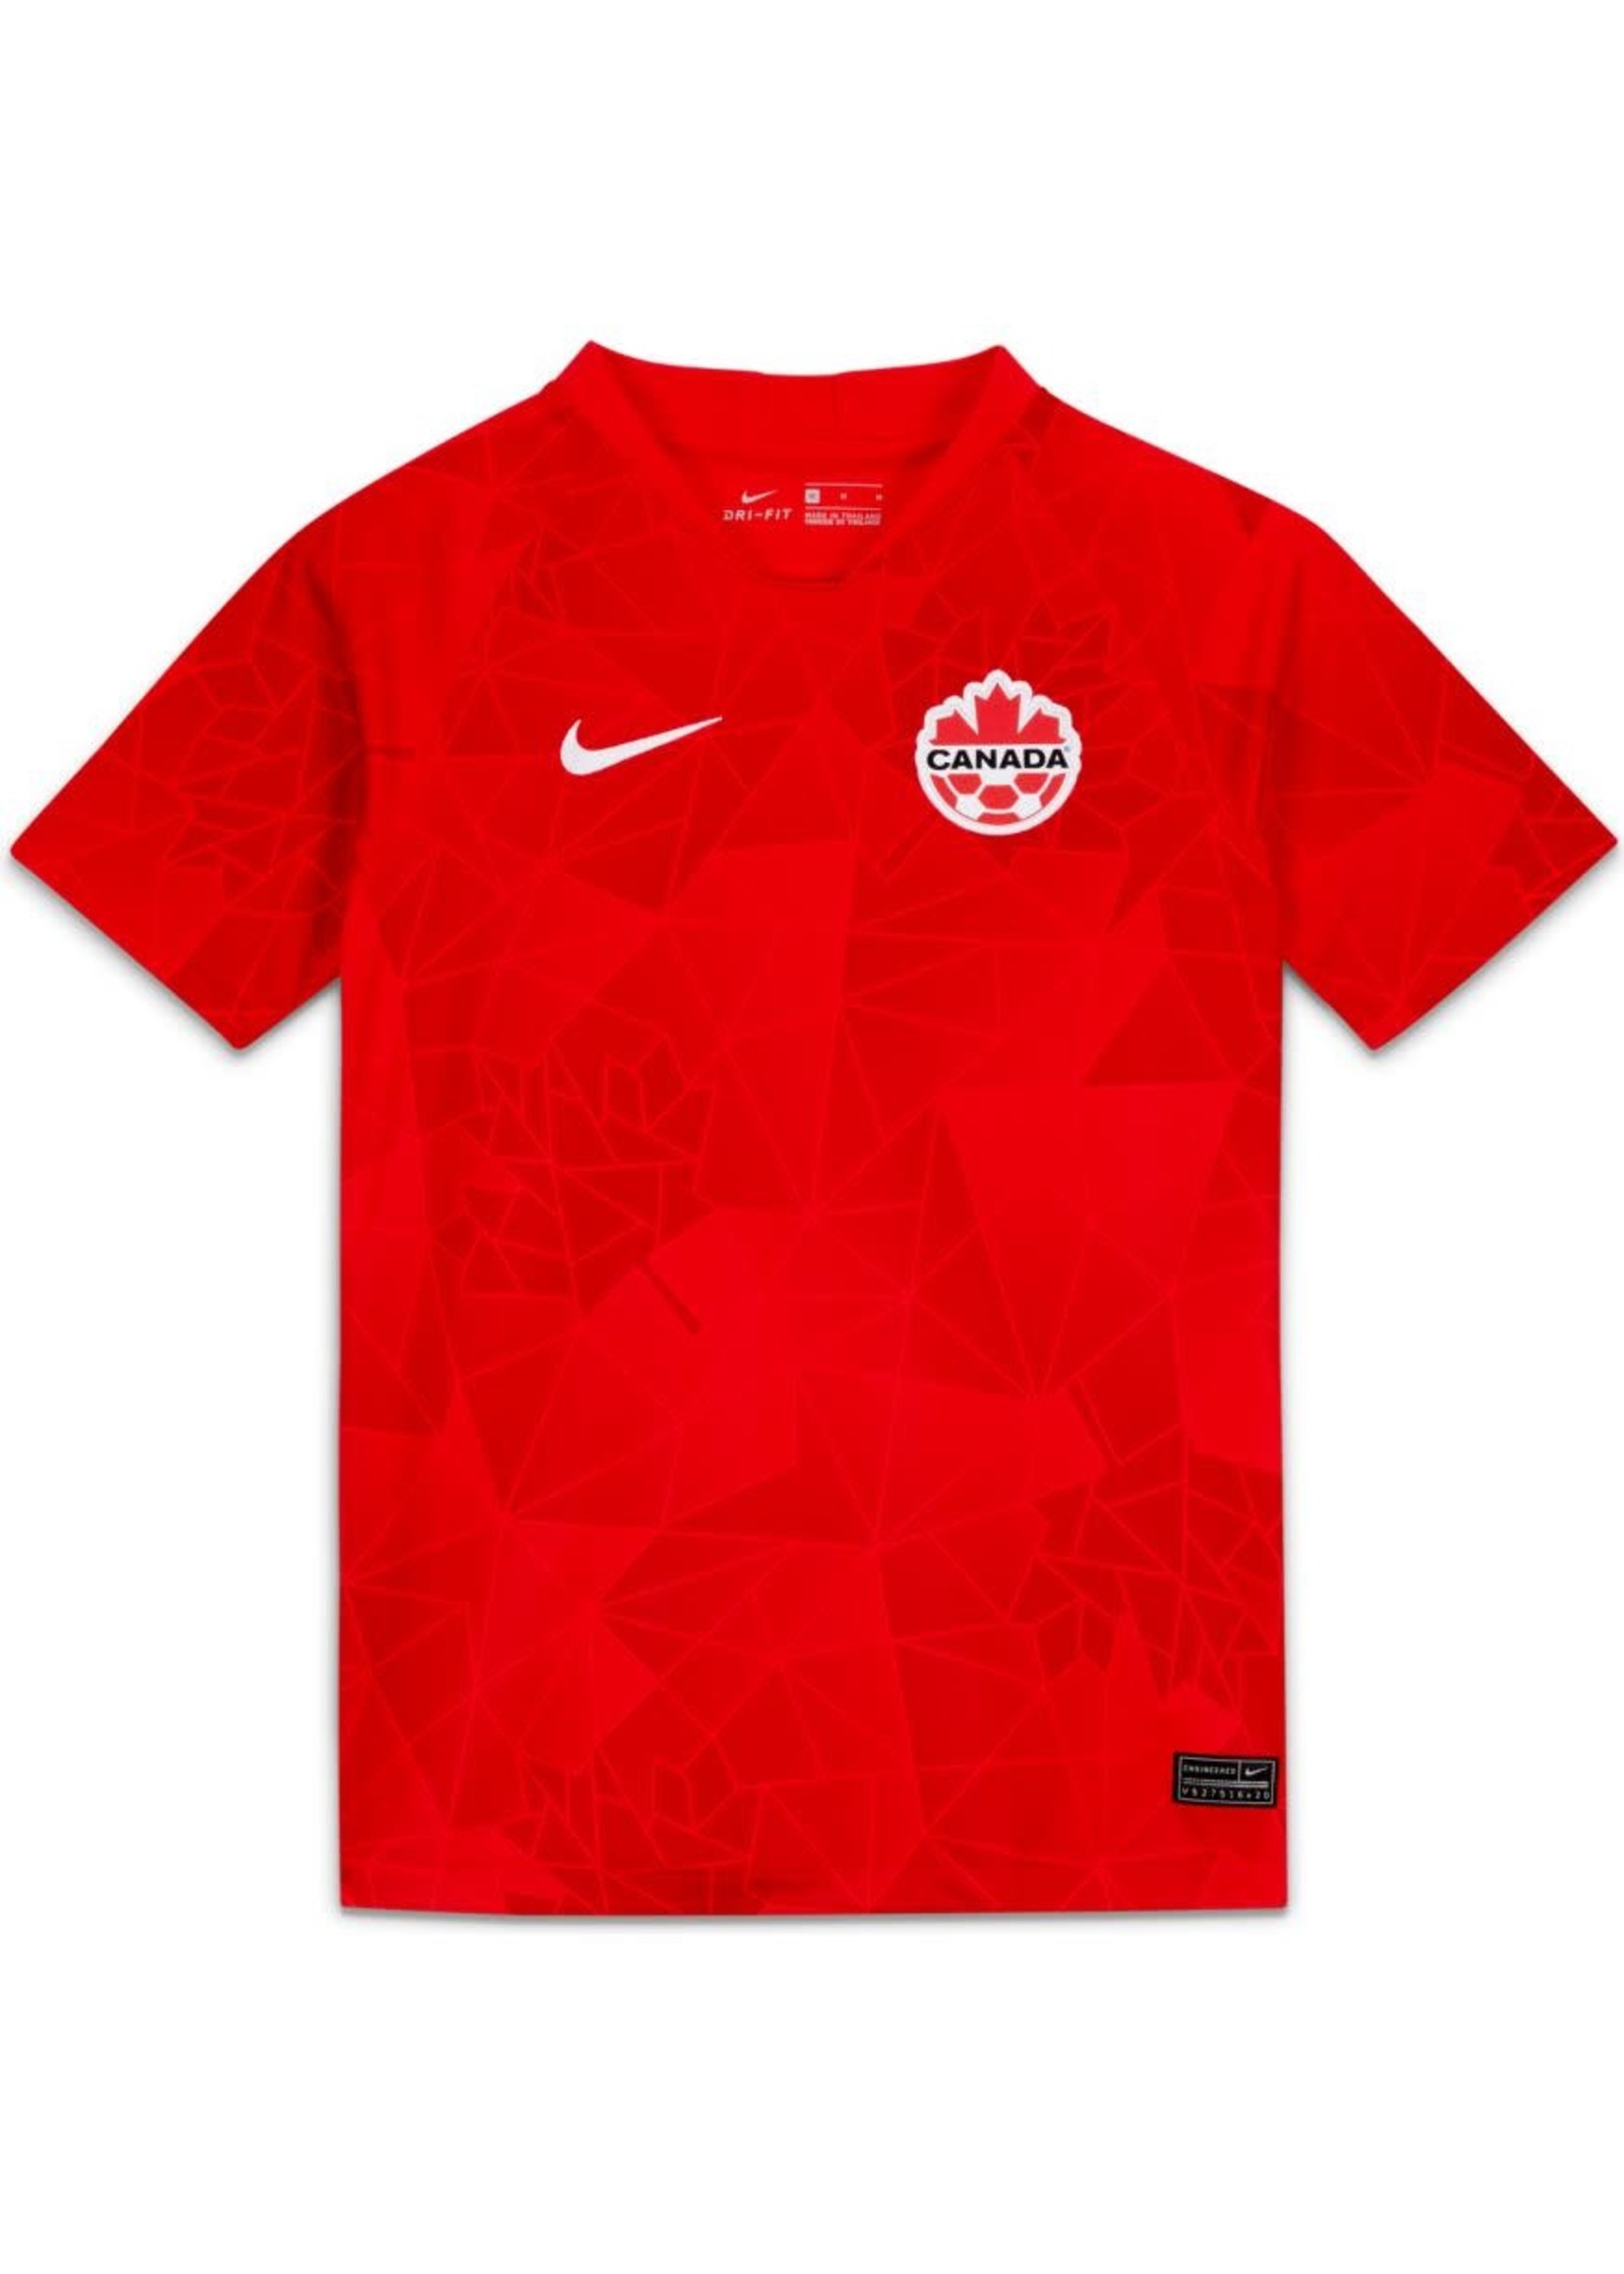 Nike Canada 20/21 Home Jersey Youth